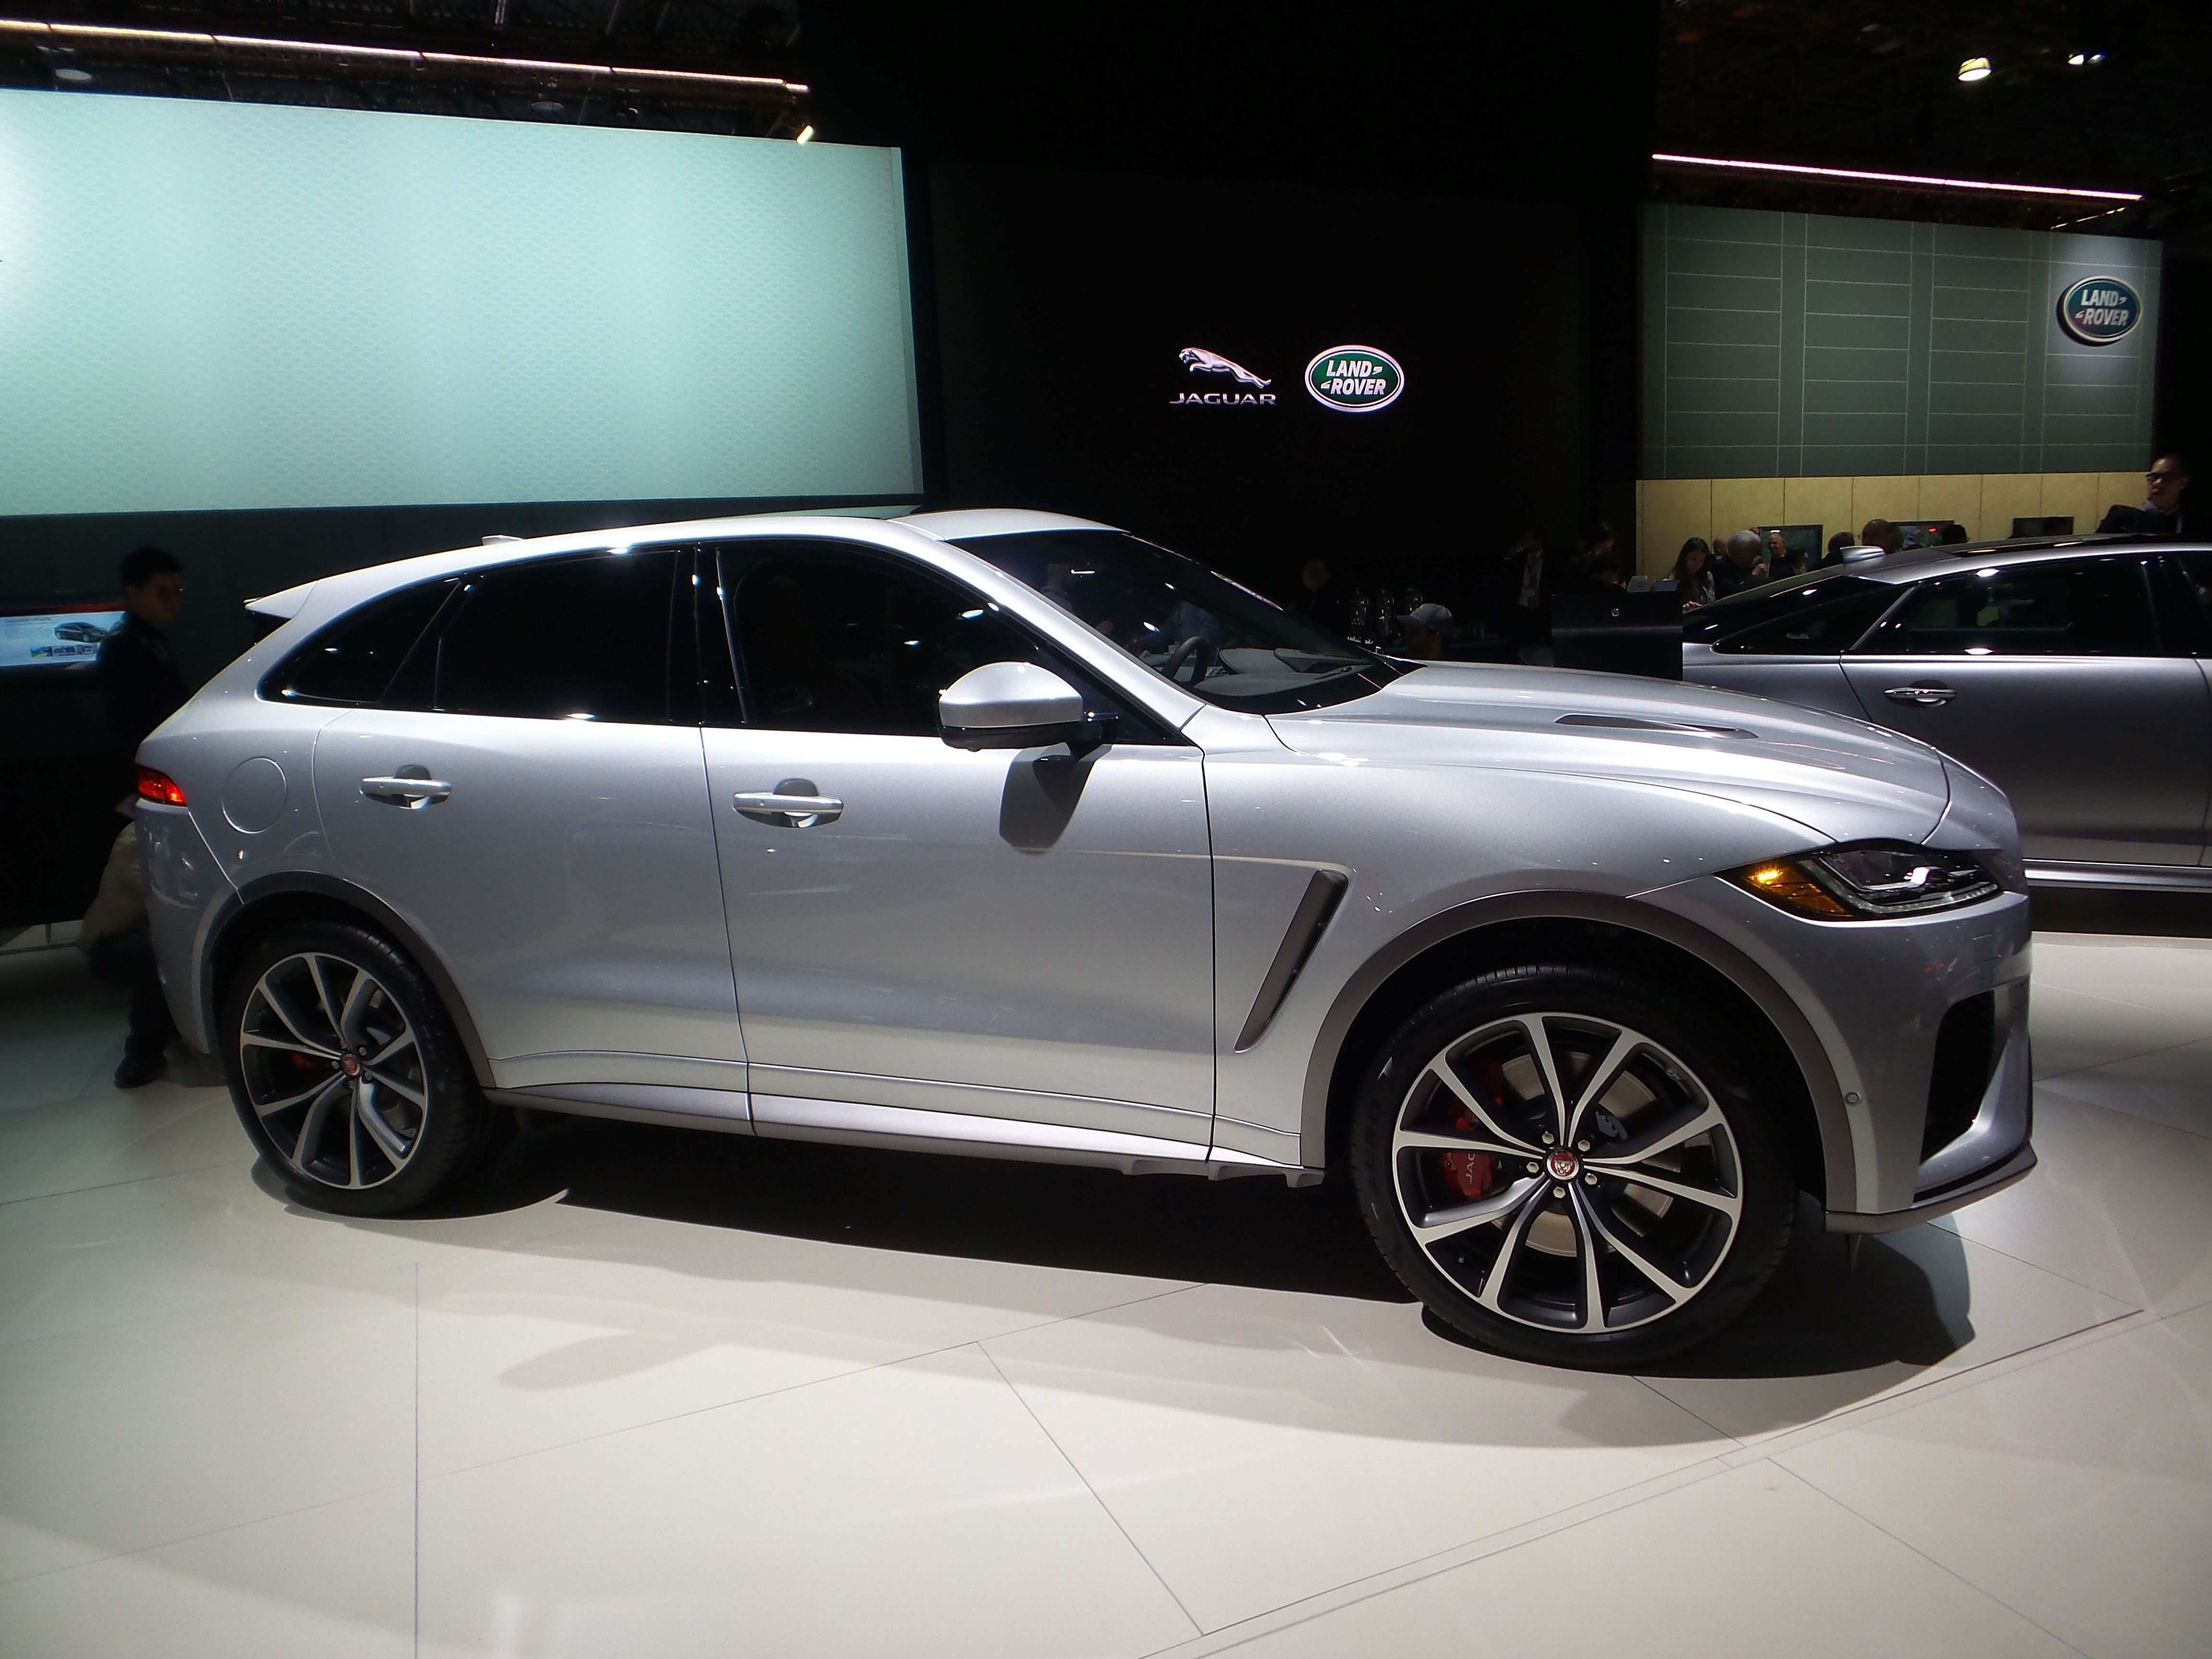 90 New New Jaguar 2019 Cars Specs And Review Photos by New Jaguar 2019 Cars Specs And Review